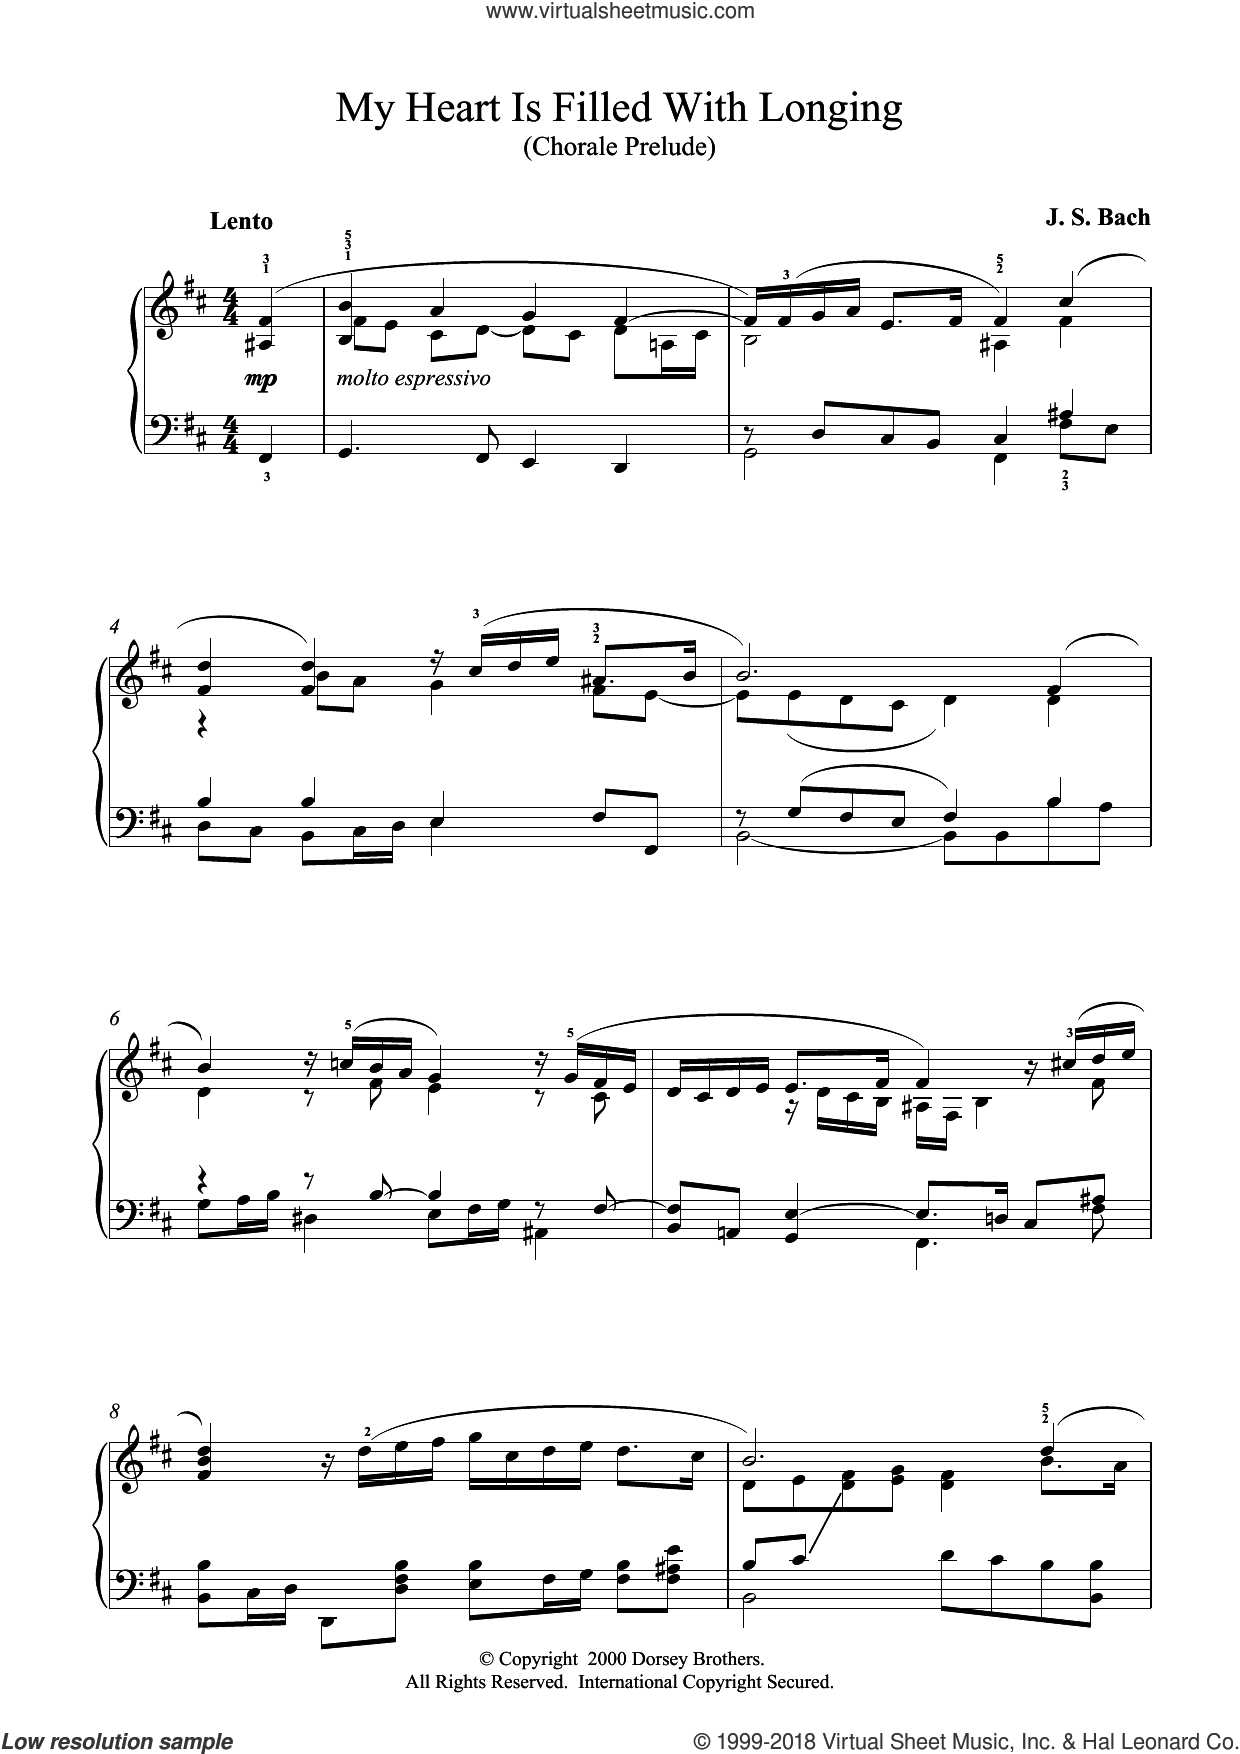 My Heart Is Filled With Longing sheet music for piano solo by Johann Sebastian Bach. Score Image Preview.